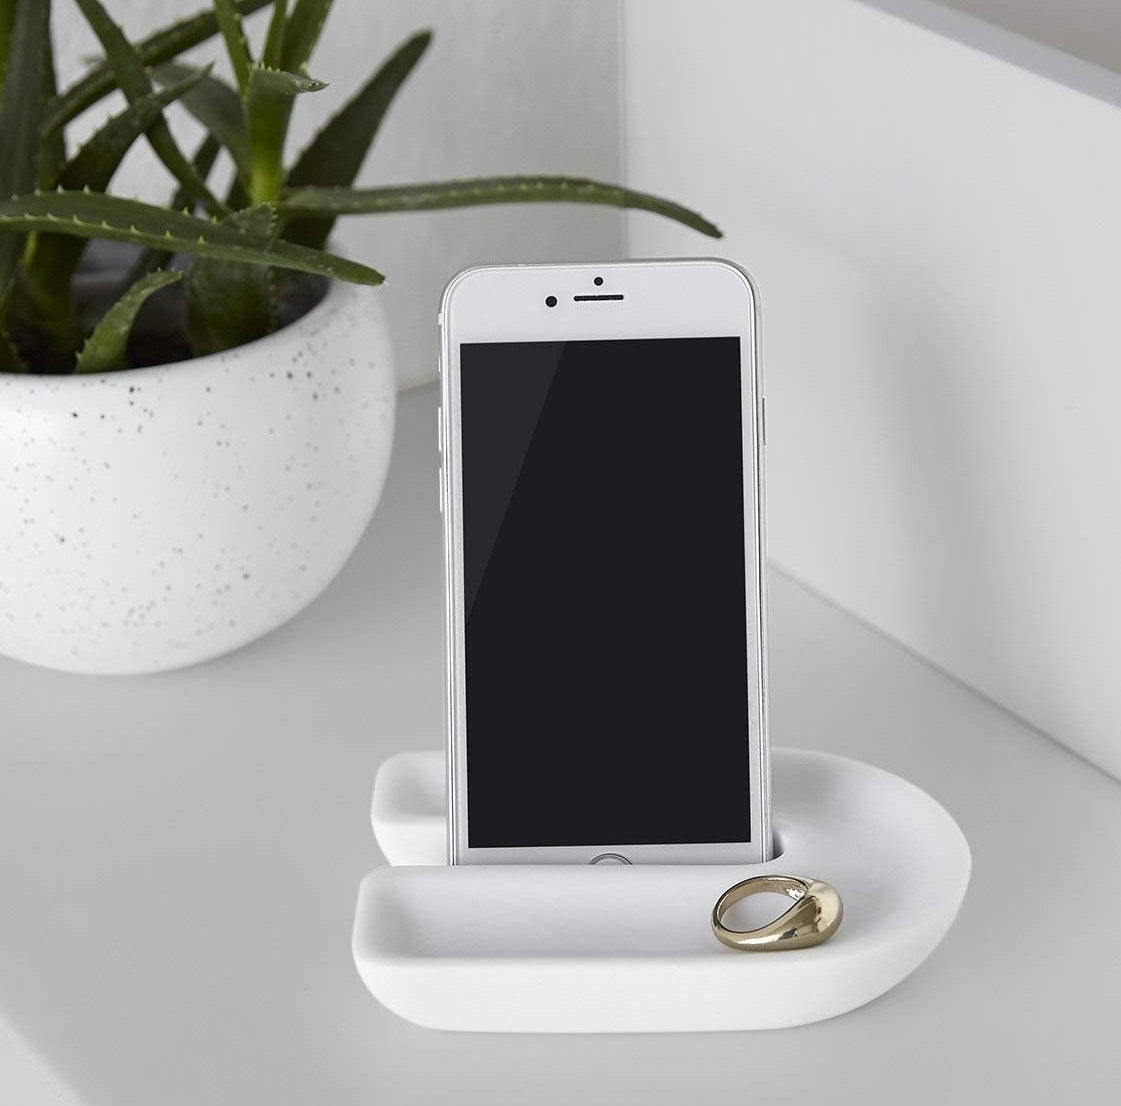 the white countertop tray with an iPhone and ring inside